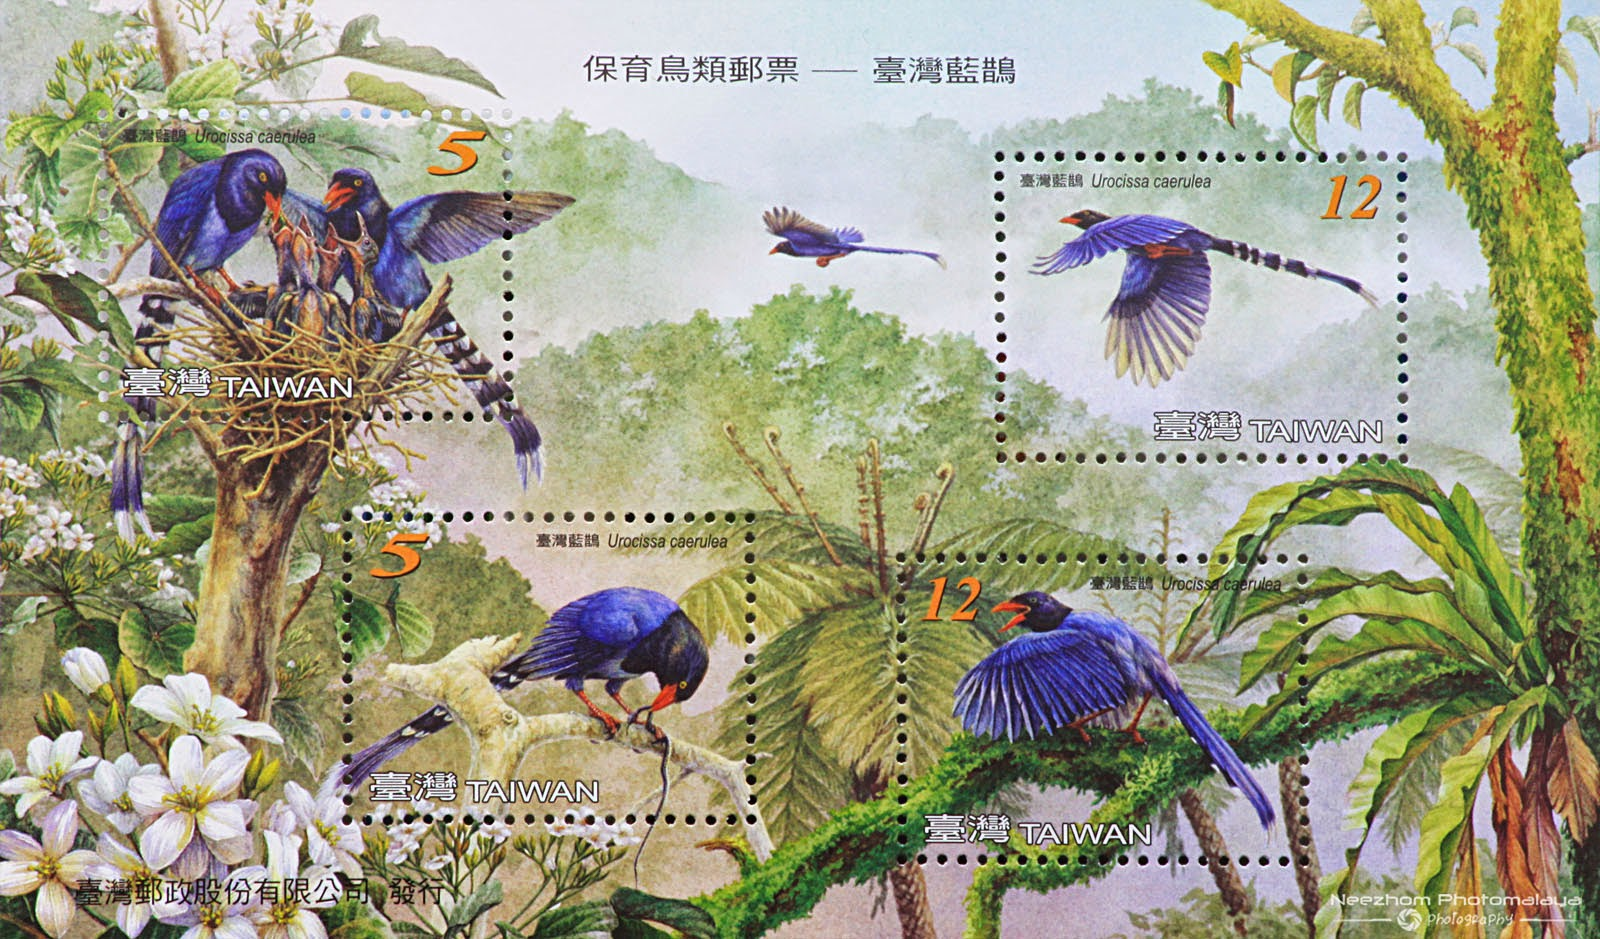 Taiwan 2008 Blue Magpie miniature sheet